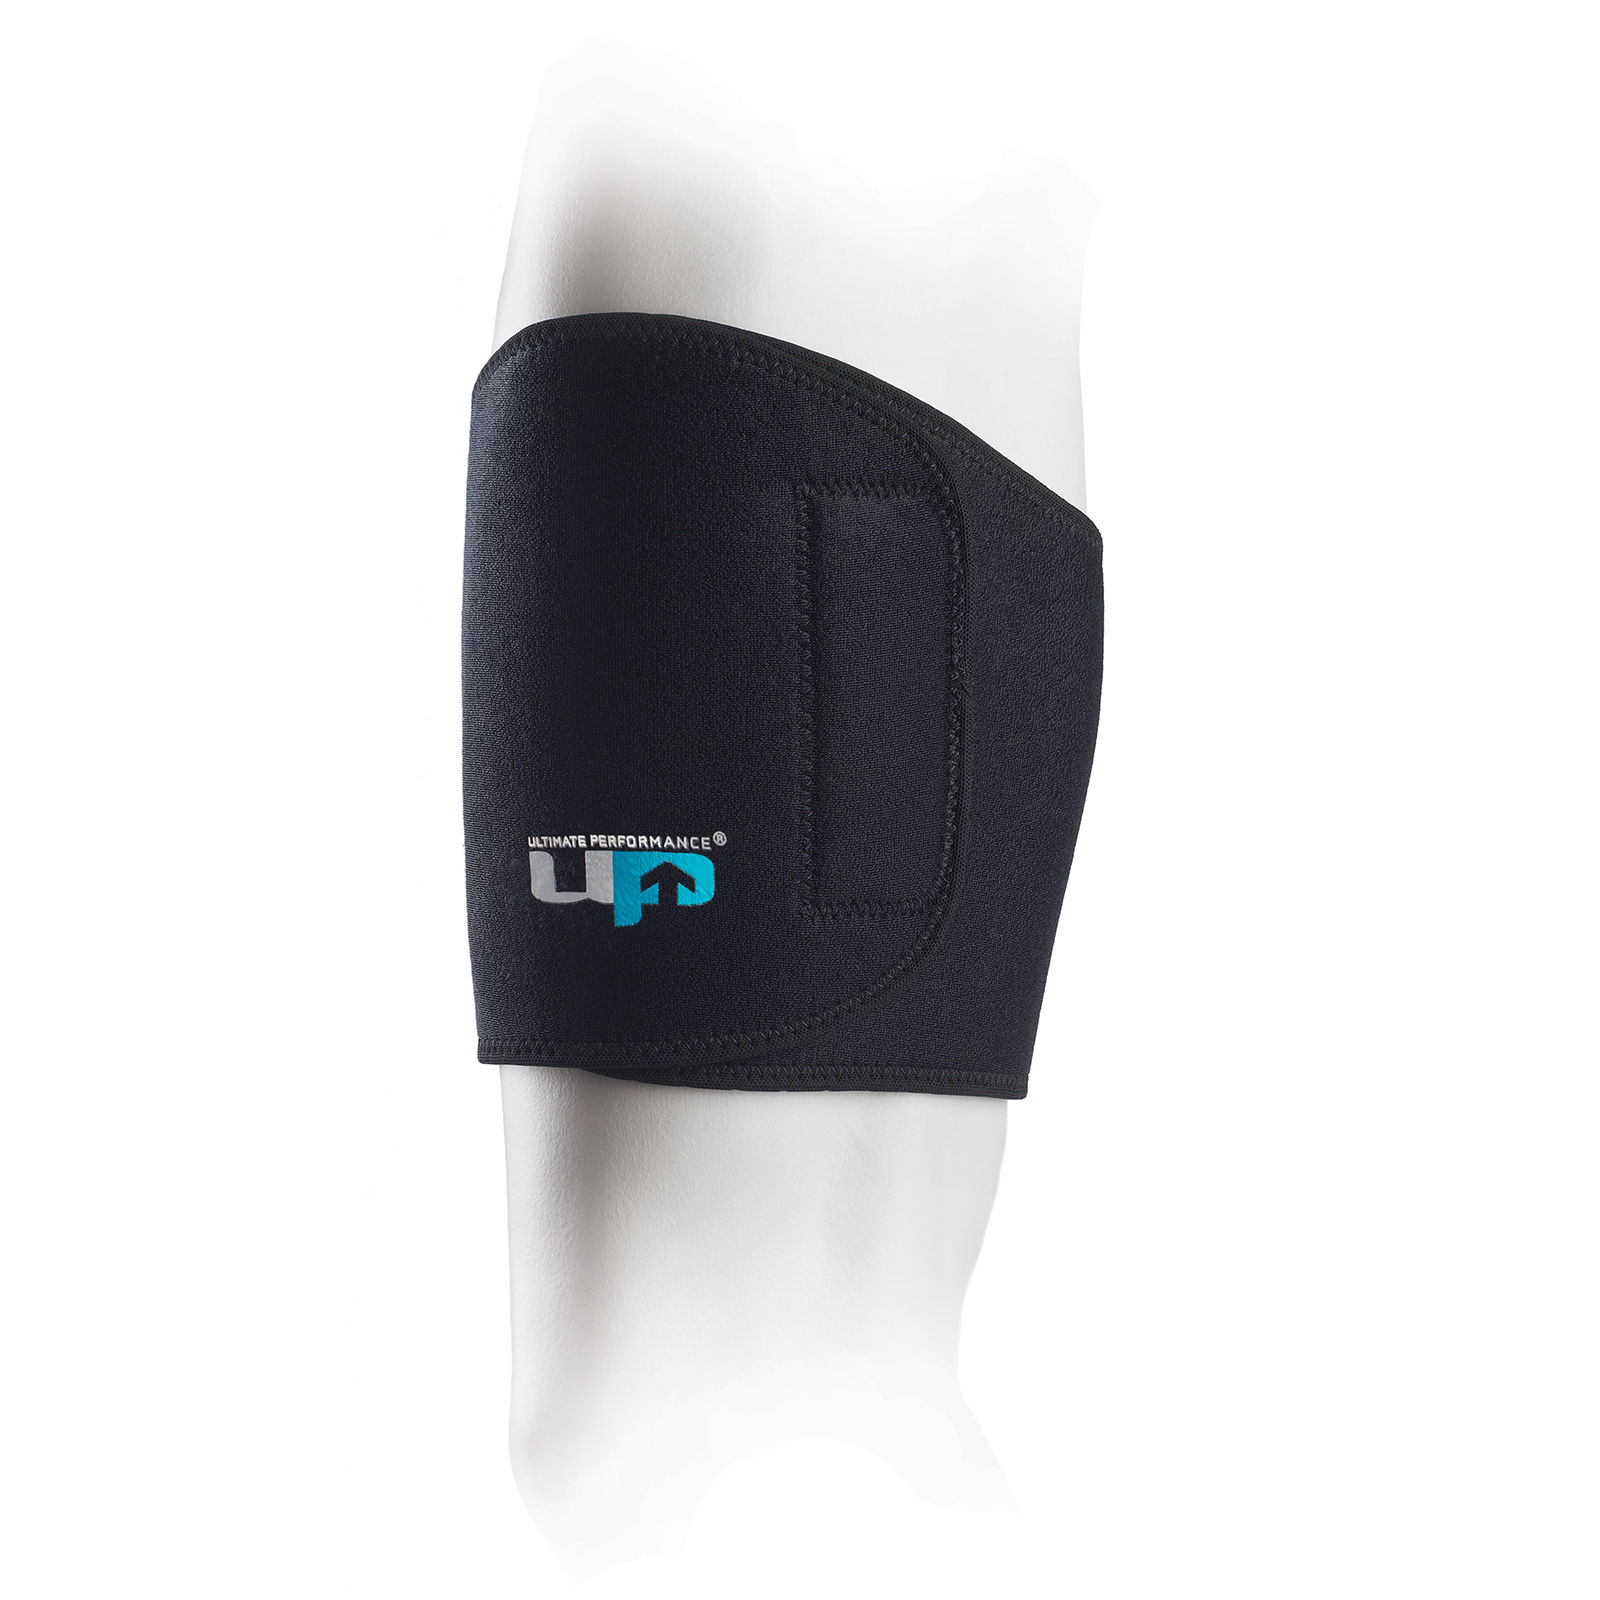 17a6751a53 Sentinel Ultimate Performance Neoprene Thigh Strap Black Compression Groin  Support